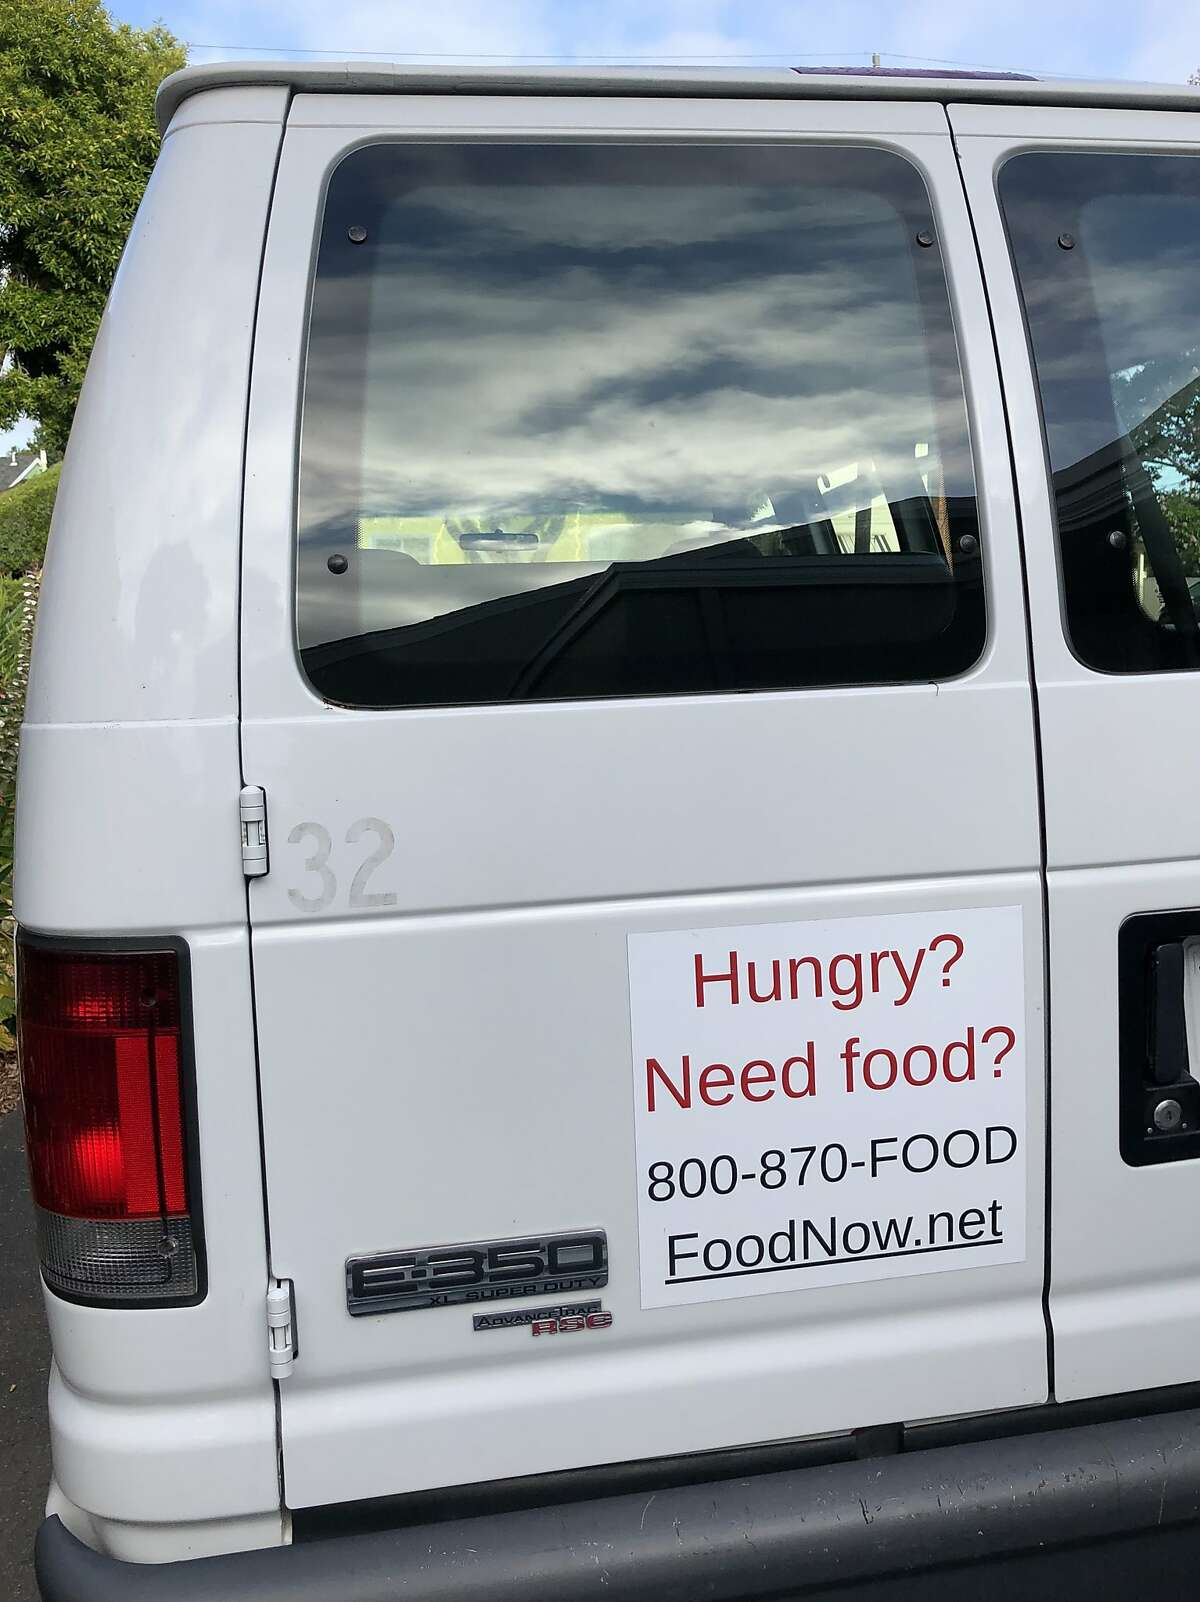 This white van was stolen early Thursday from the All Saints Episcopal Church's food pantry and had yet to be spotted or recovered as of Monday morning, police and church officials said.